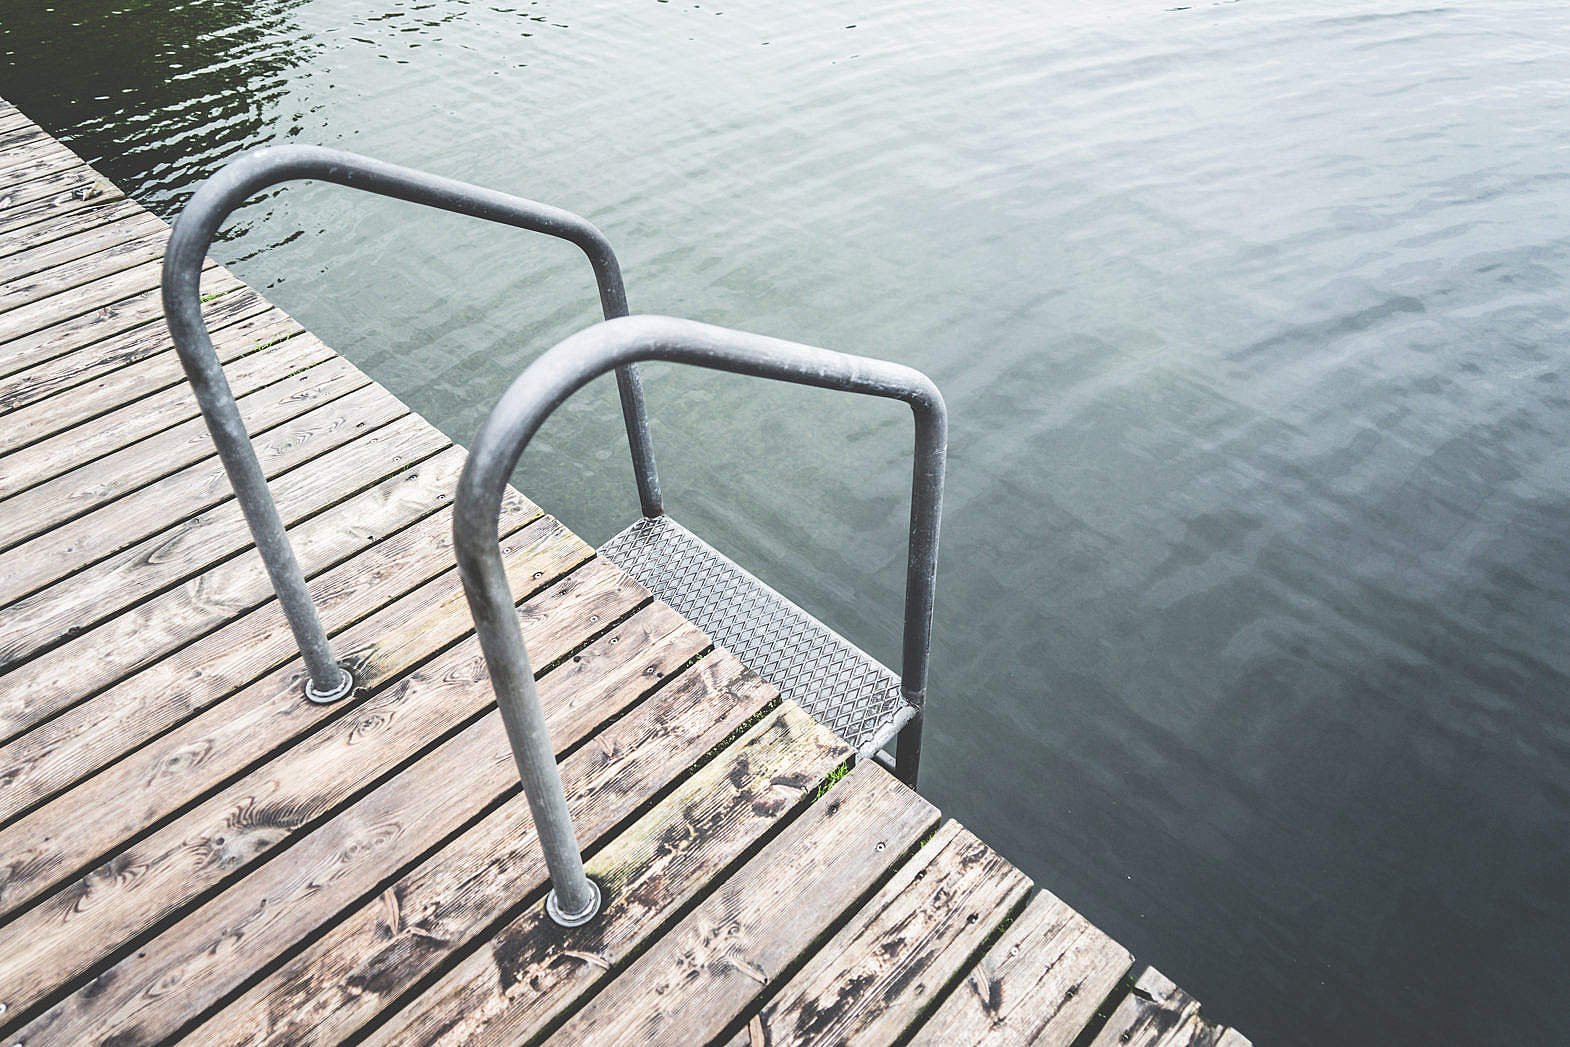 swimming-pontoon-with-ladder-at-lake_free_stock_photos_picjumbo_dsc00796-1570x1047.jpg